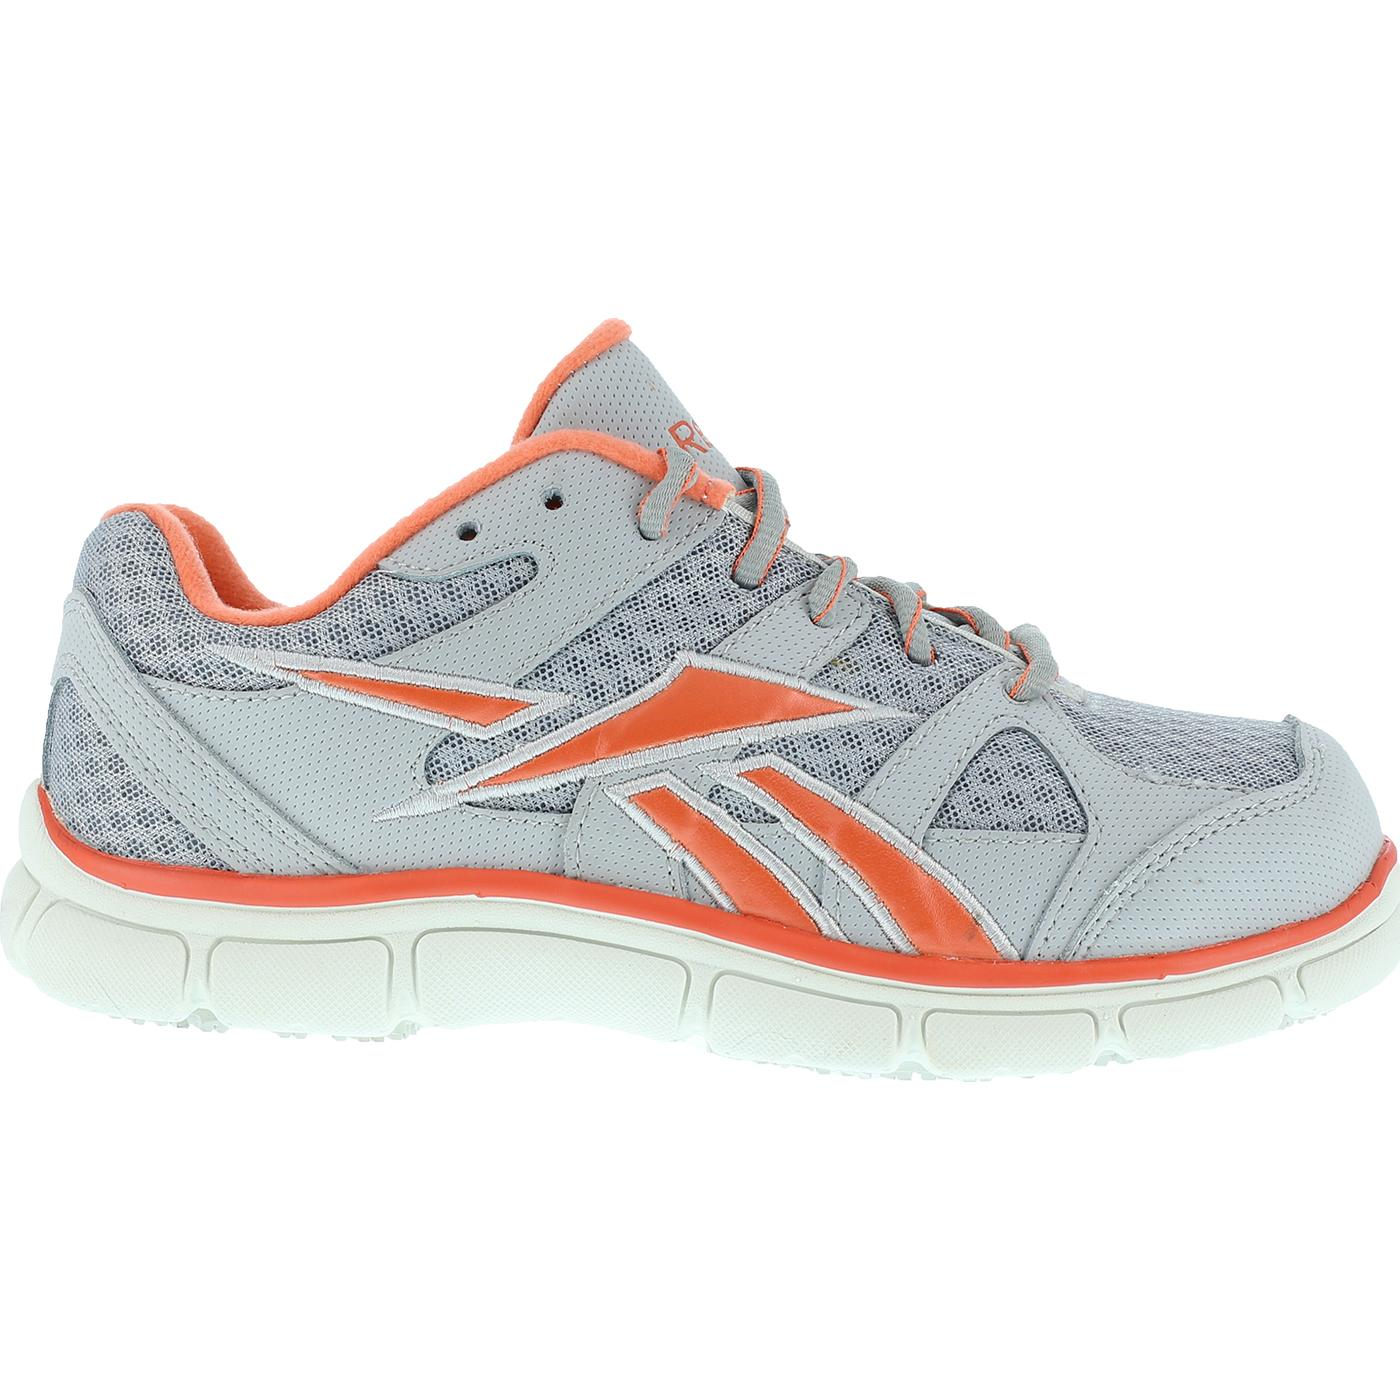 Reebok Non Slip Shoes Womens